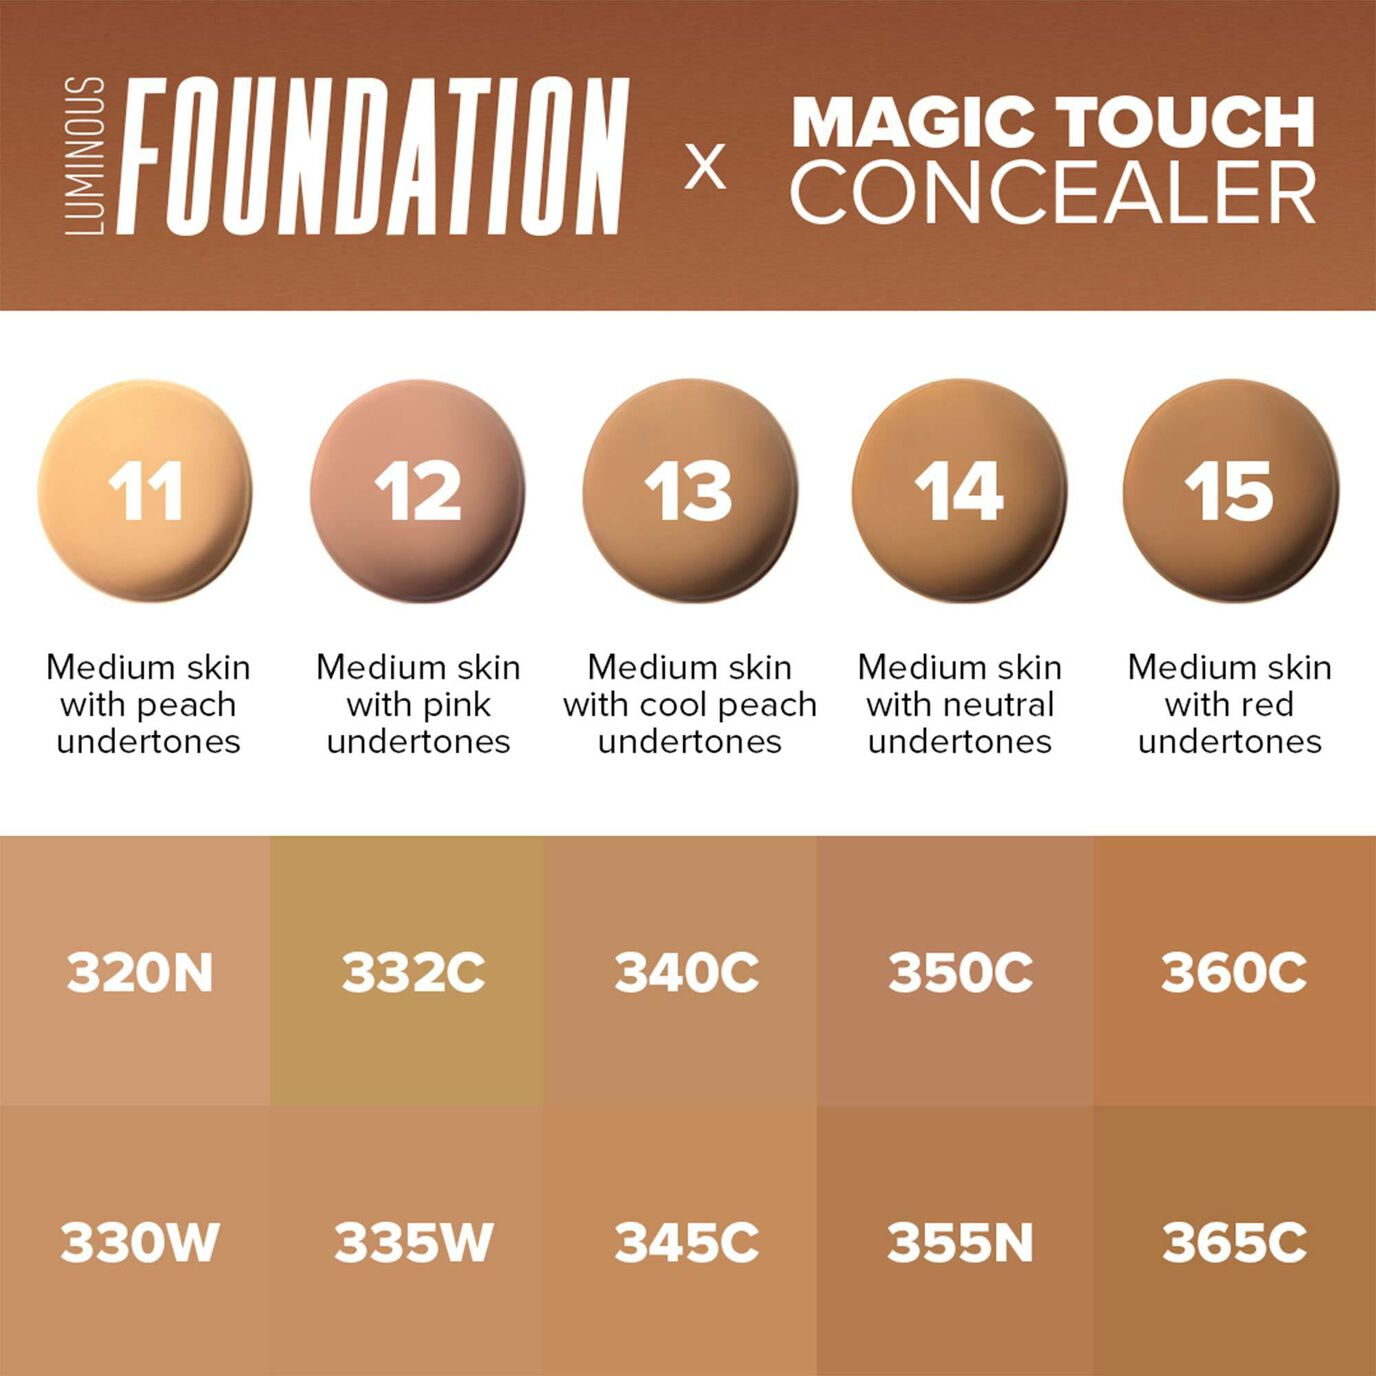 Magic Touch Concealer - Shade 14